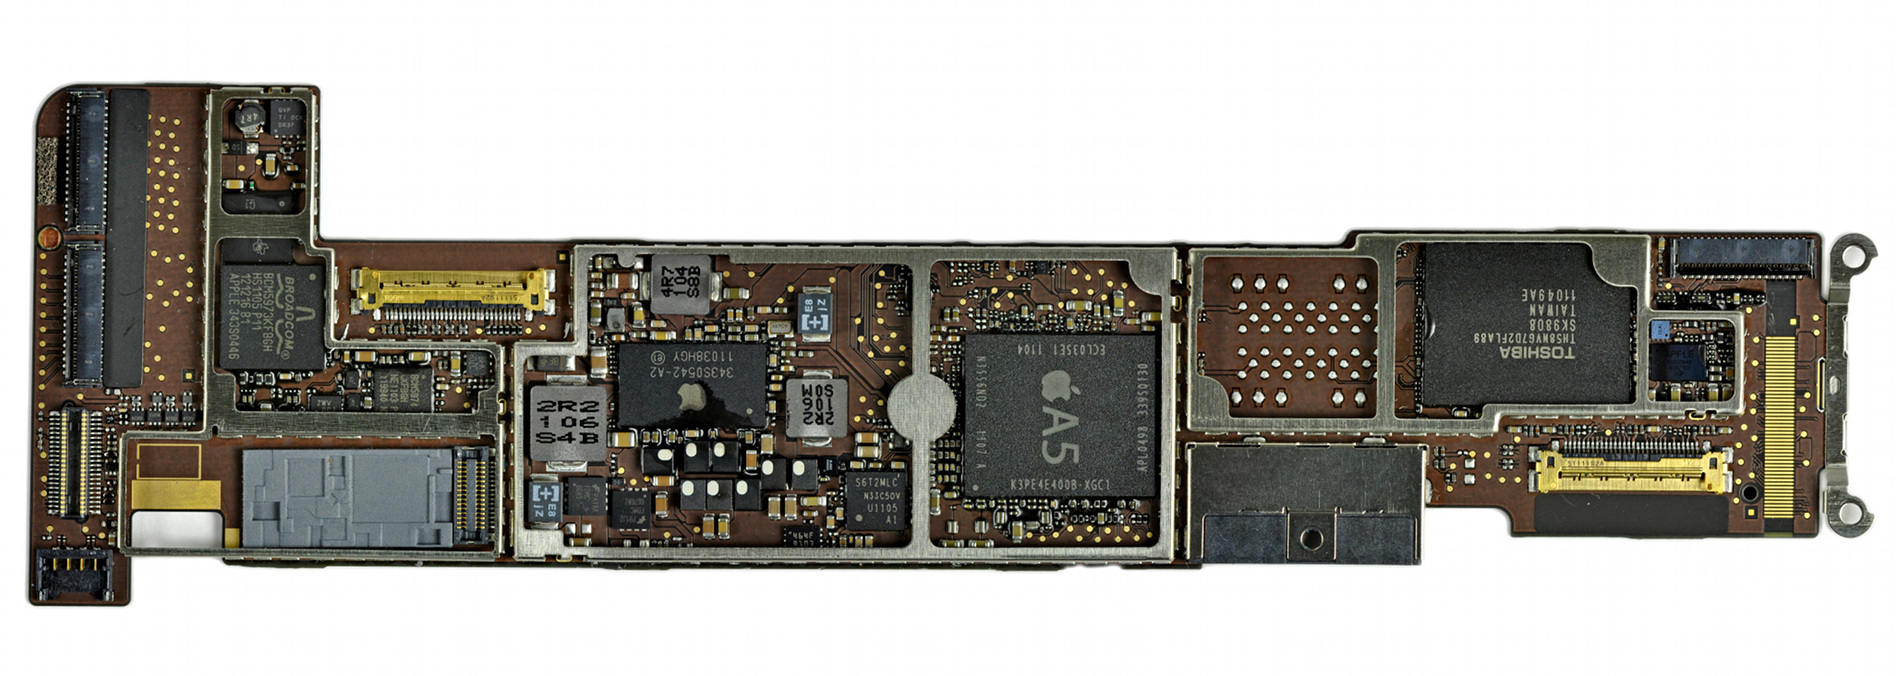 Sandisk Toshiba Take Back The Crown With A Different Kind Of Nand Ipad 4 Circuit Diagram